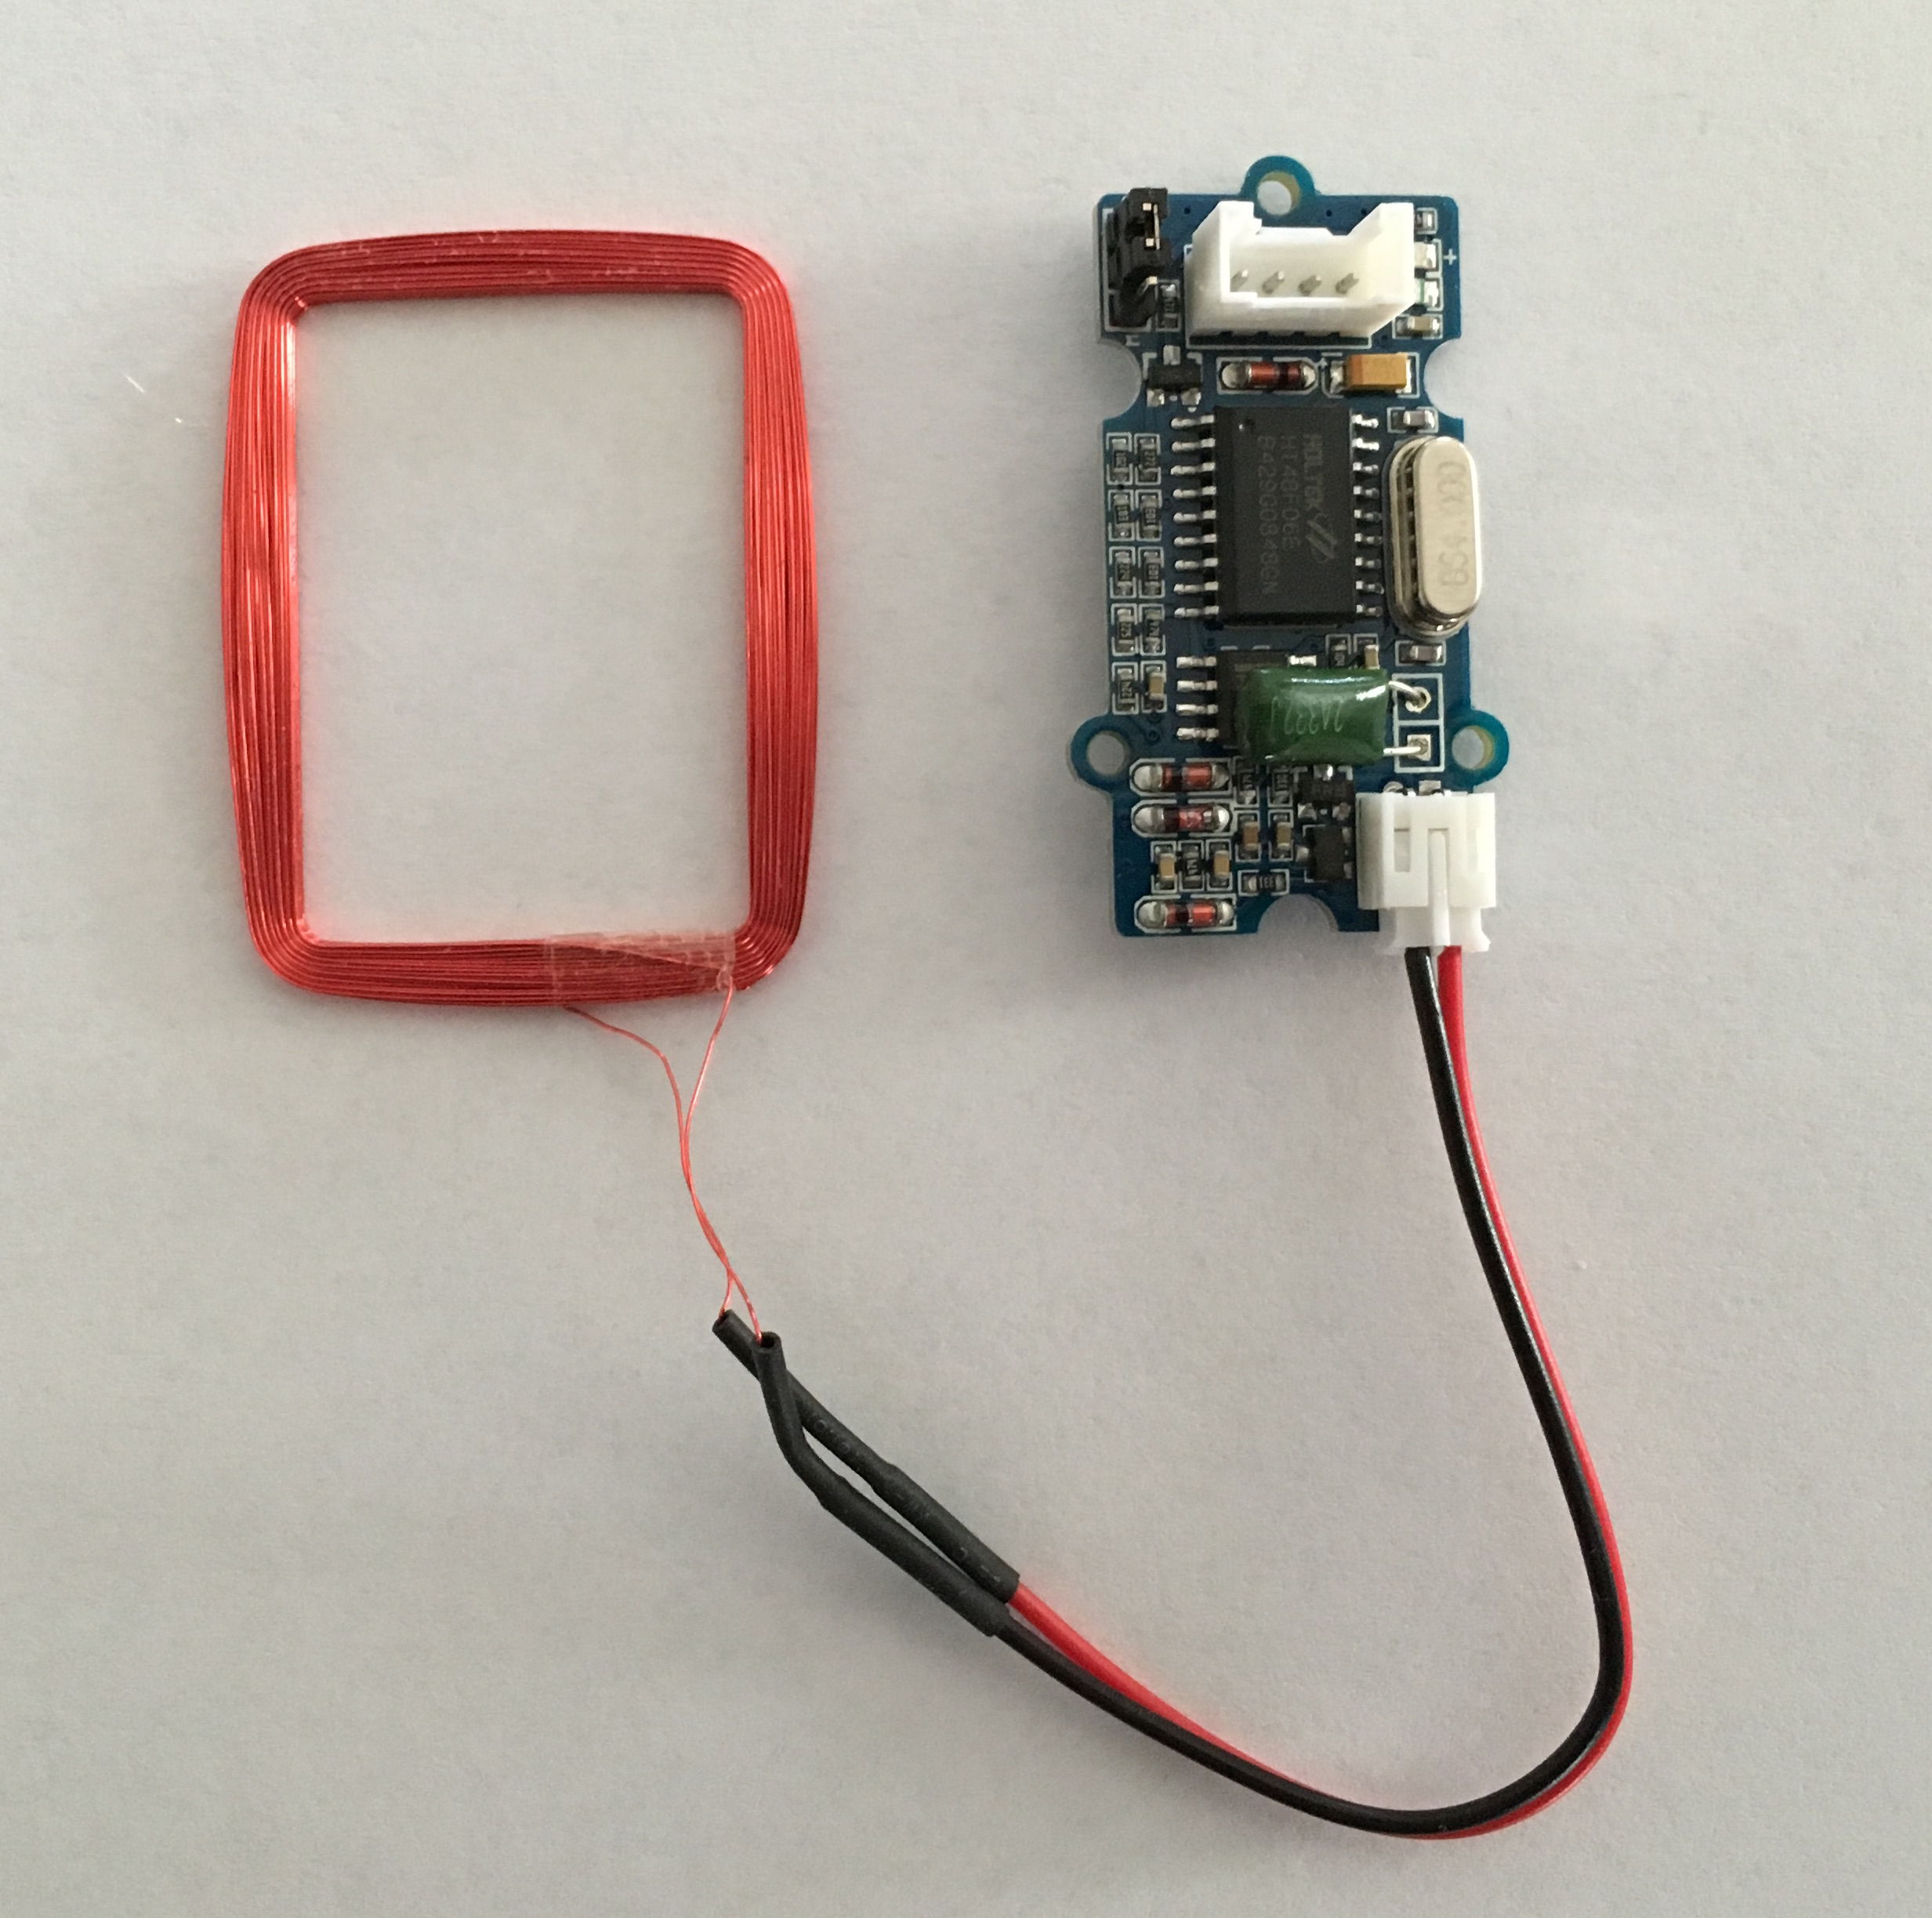 Tutorial Intro To Grove Connectors For Arduino Raspberry Pi Pin Wiring Two 3 Way Motion Detector Switches On Pinterest Uart Rfid Reader